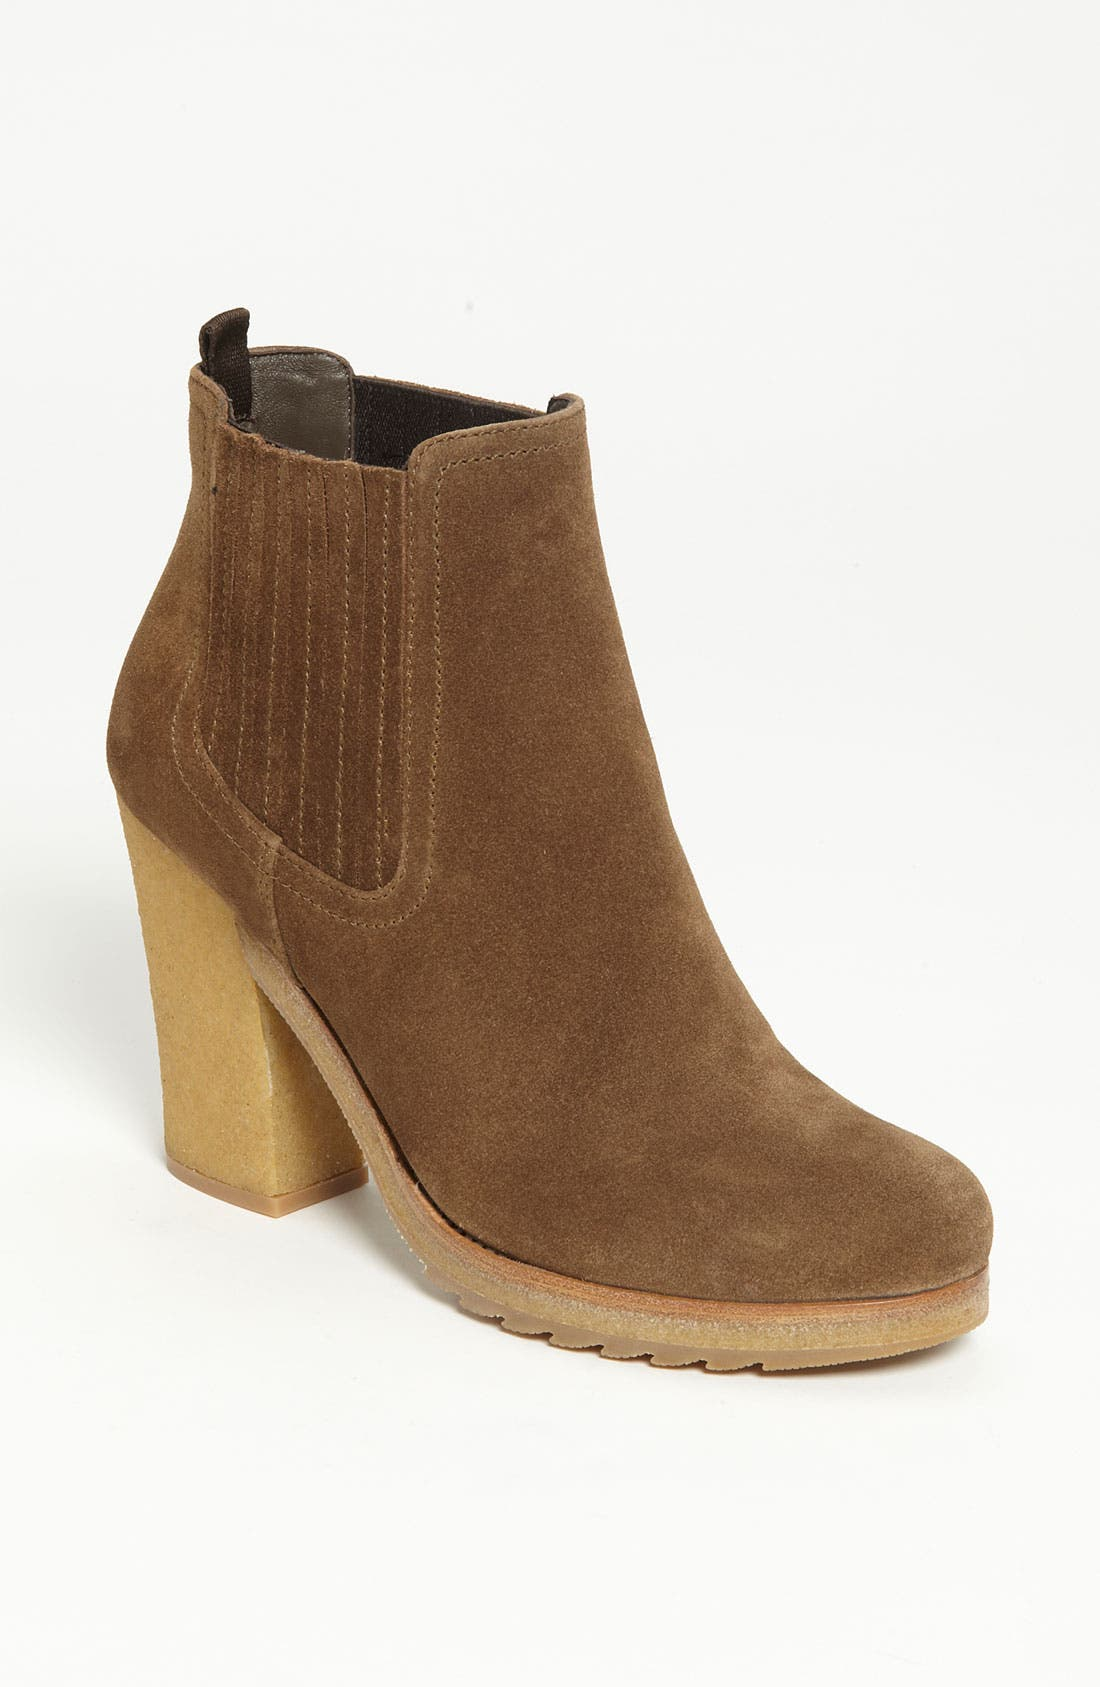 Alternate Image 1 Selected - Prada Double Gored Suede Boot